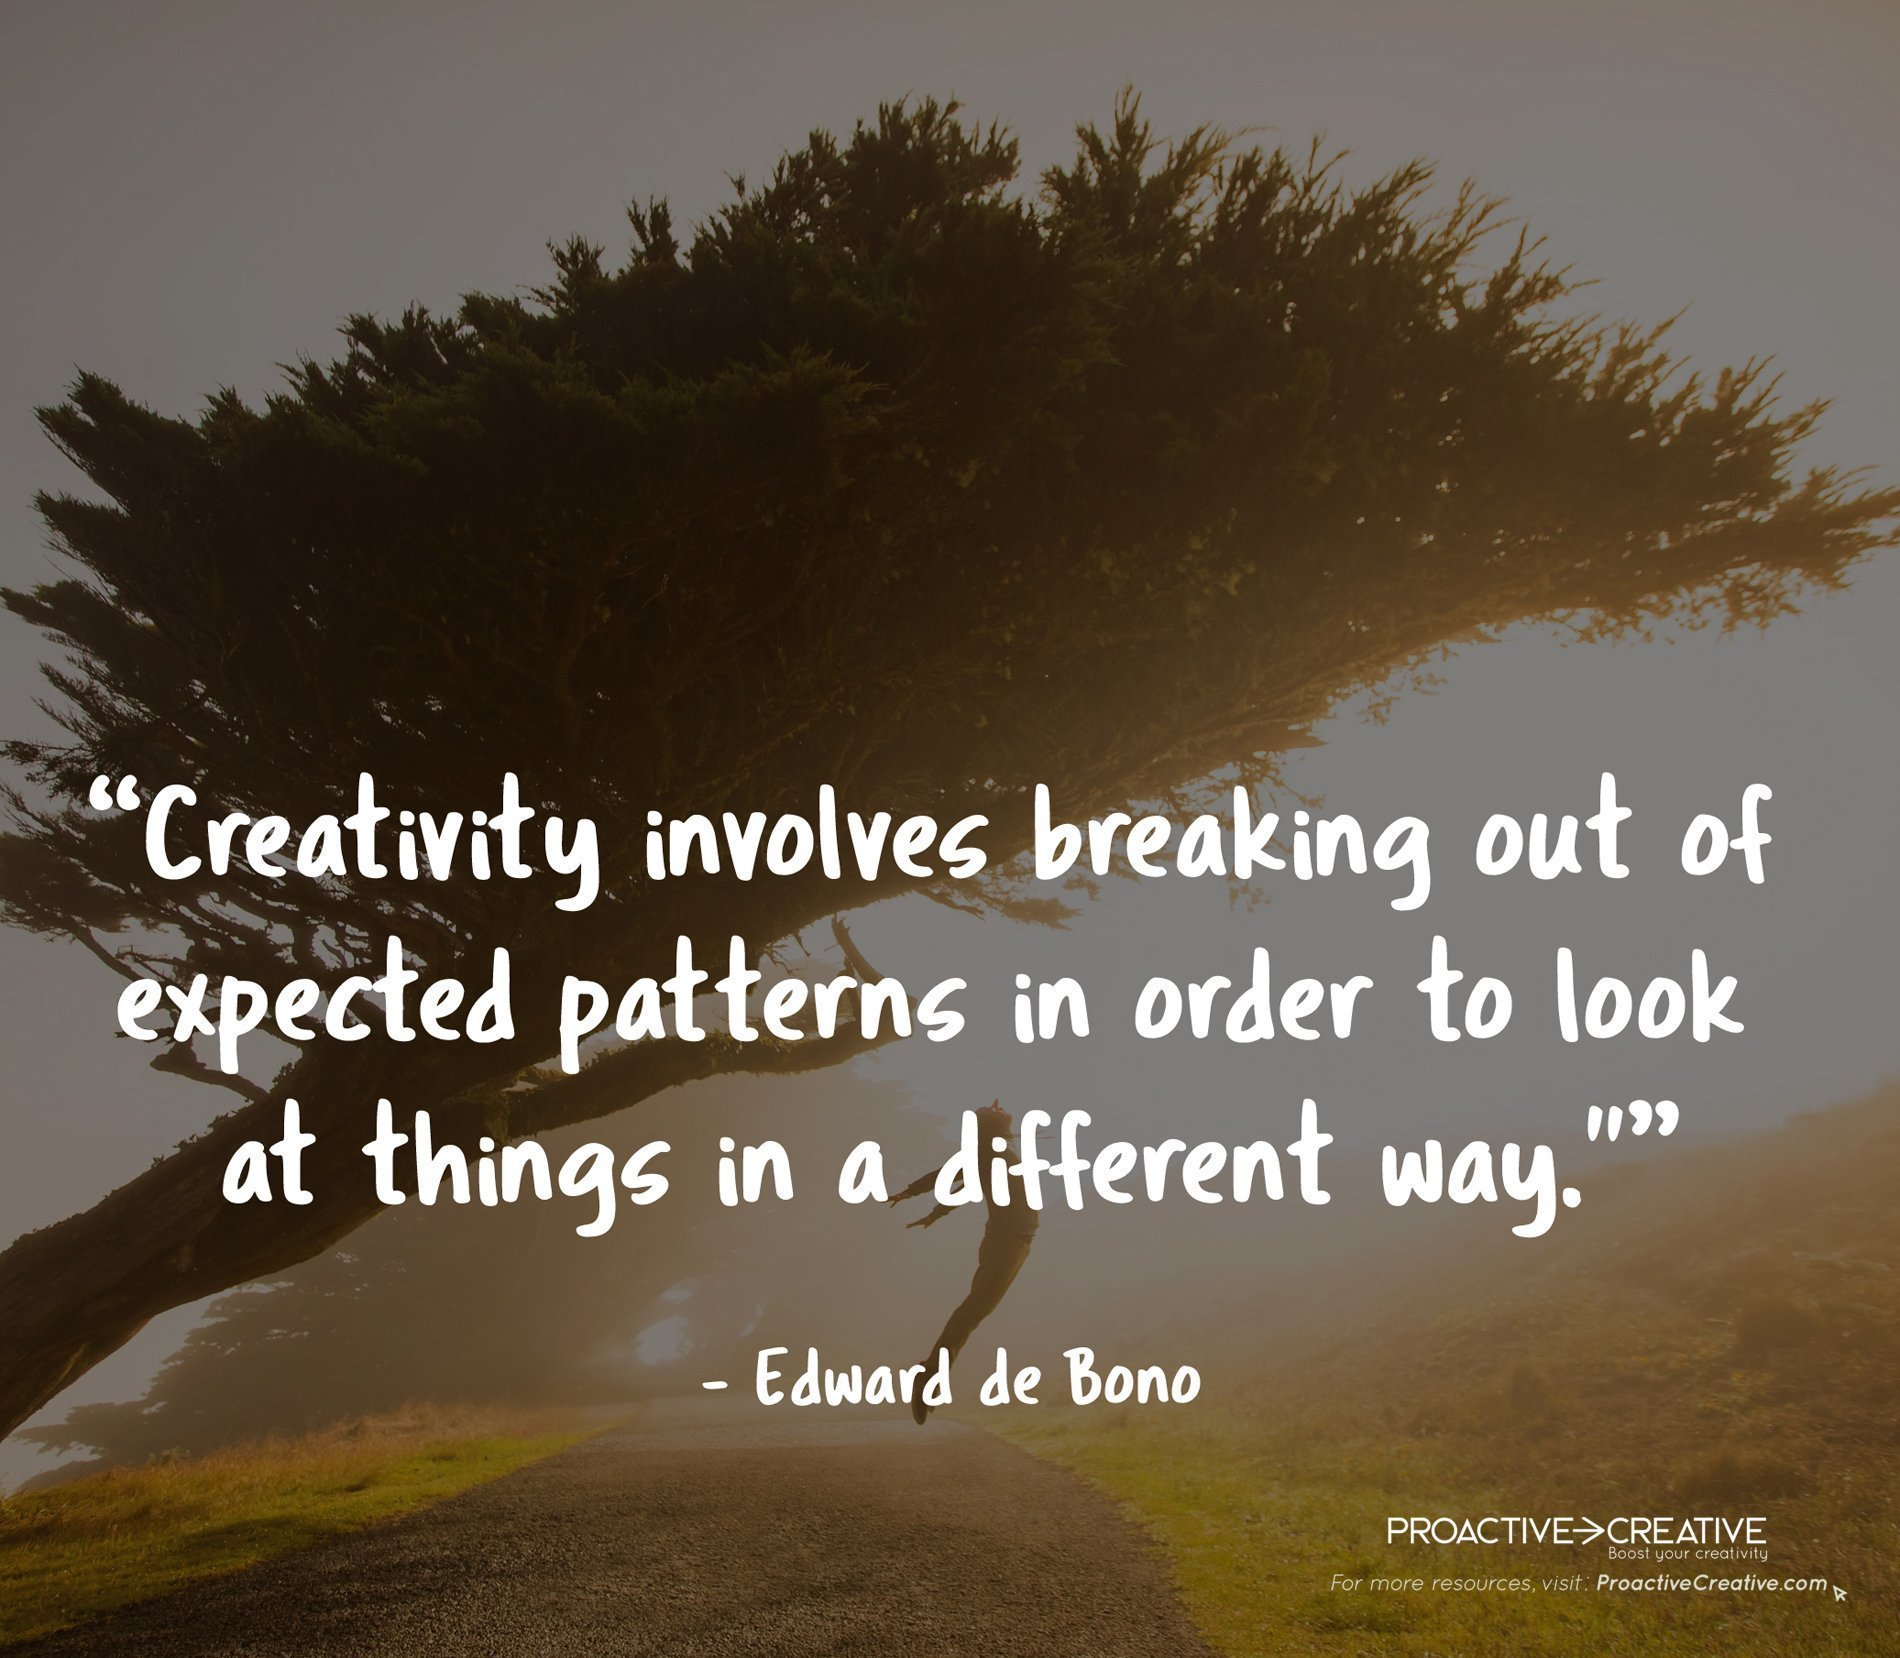 Quotes About Creativity - Edward de Bono